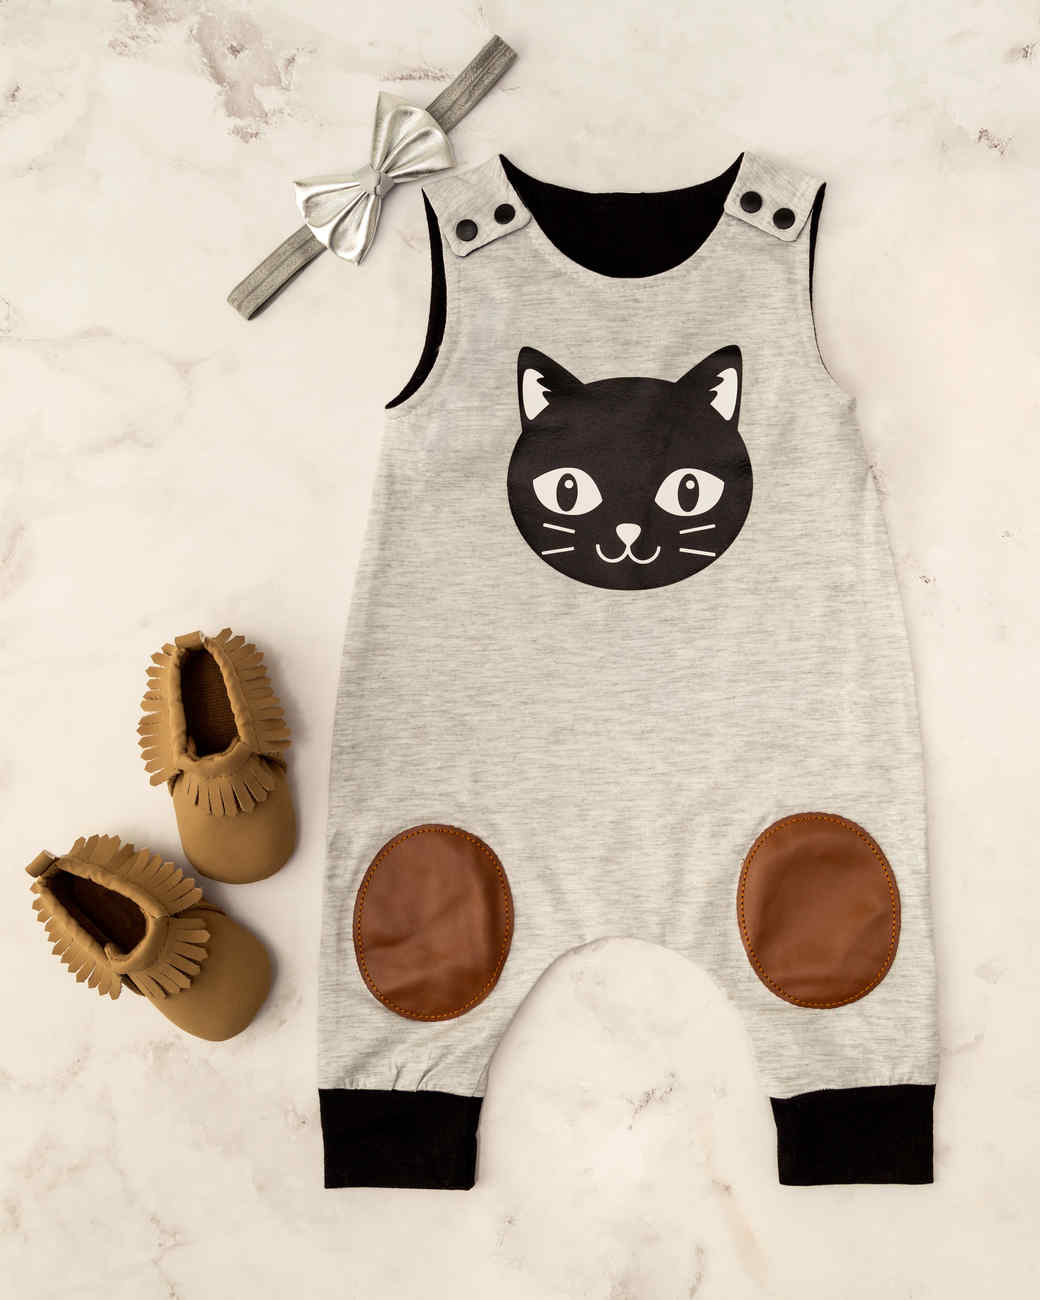 cricut cat baby overalls outfit